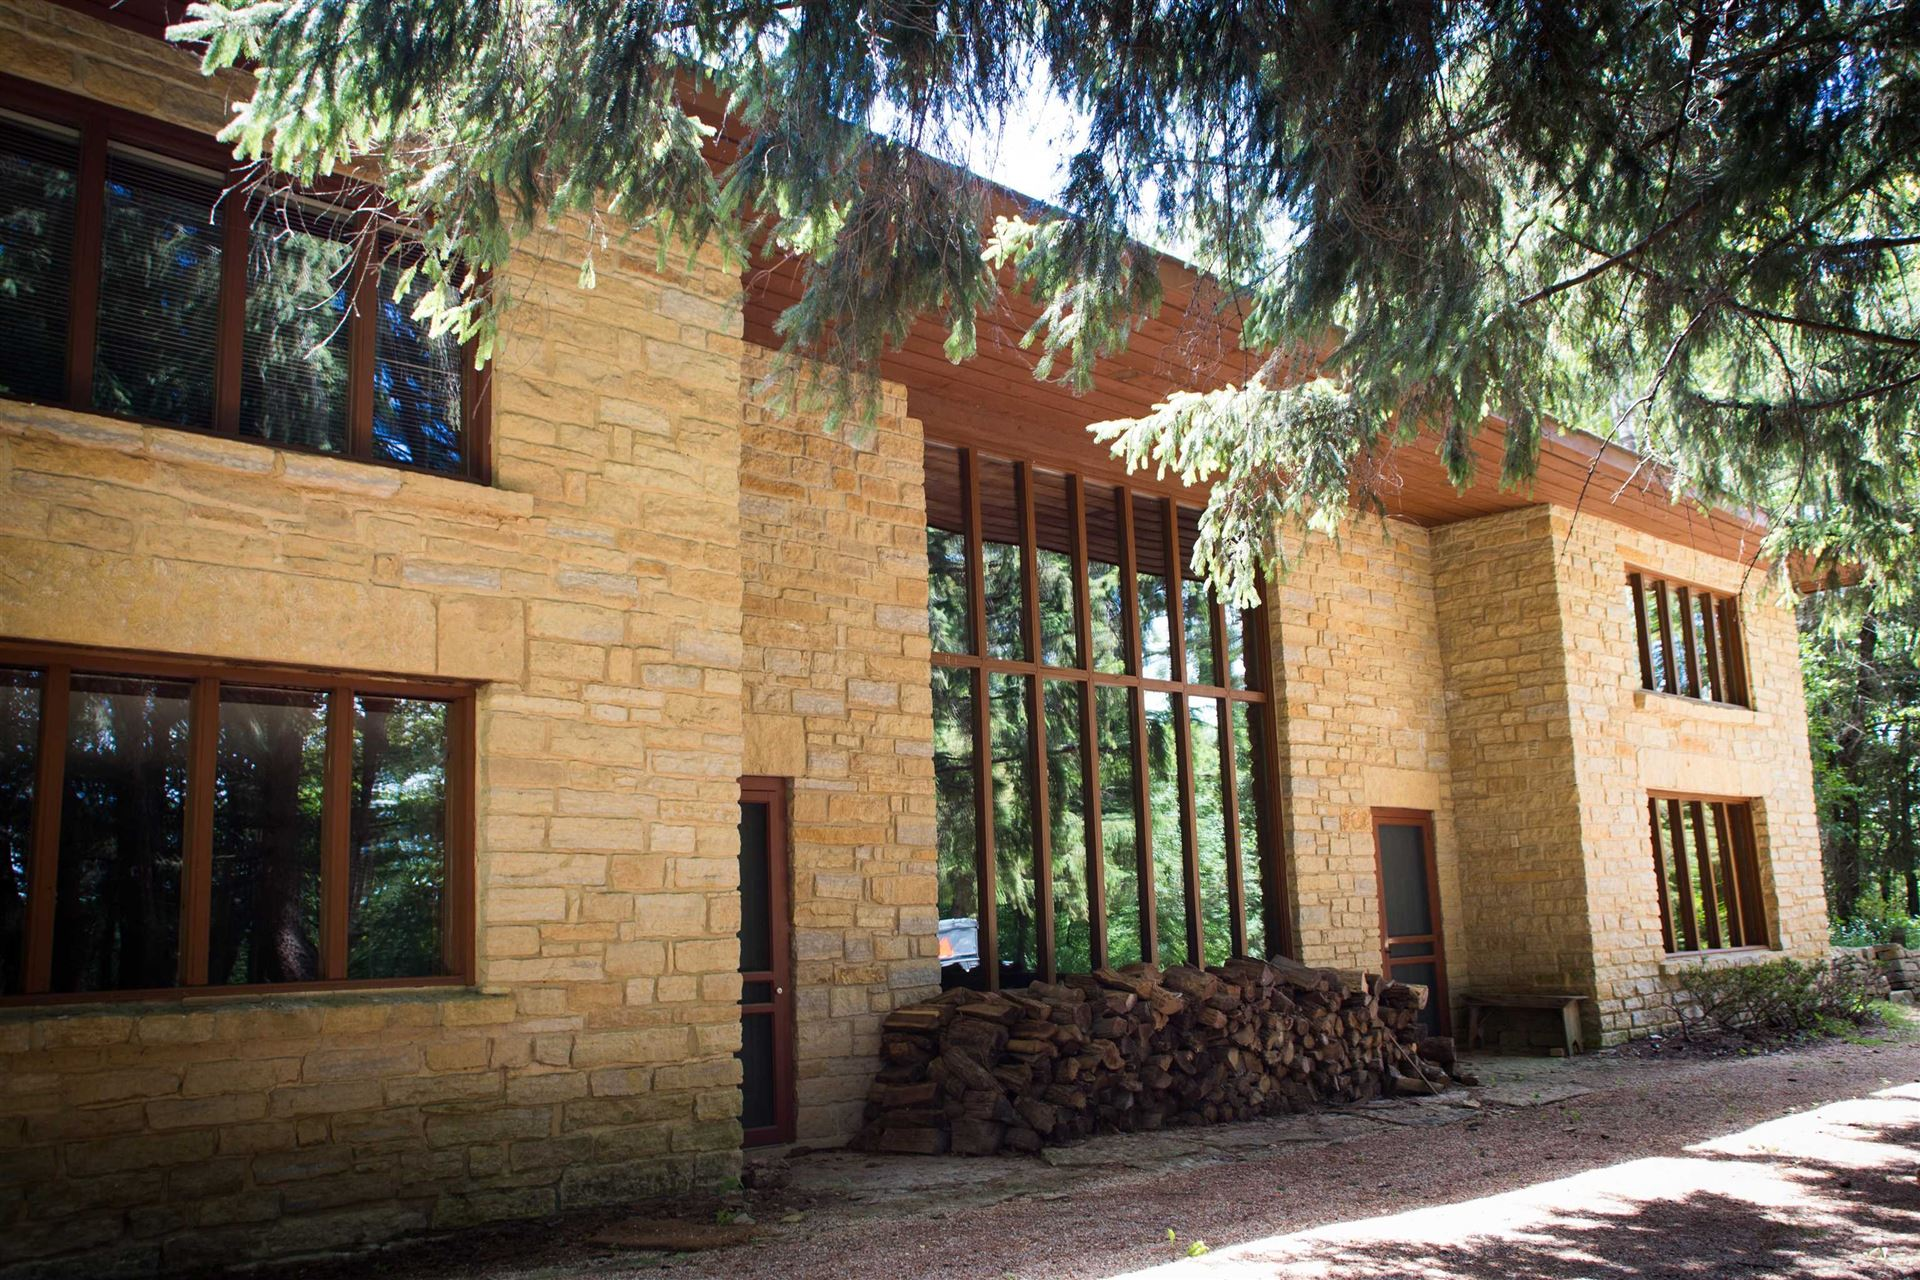 30 Jackson St, Mineral Point, WI 53565 - #: 1918592